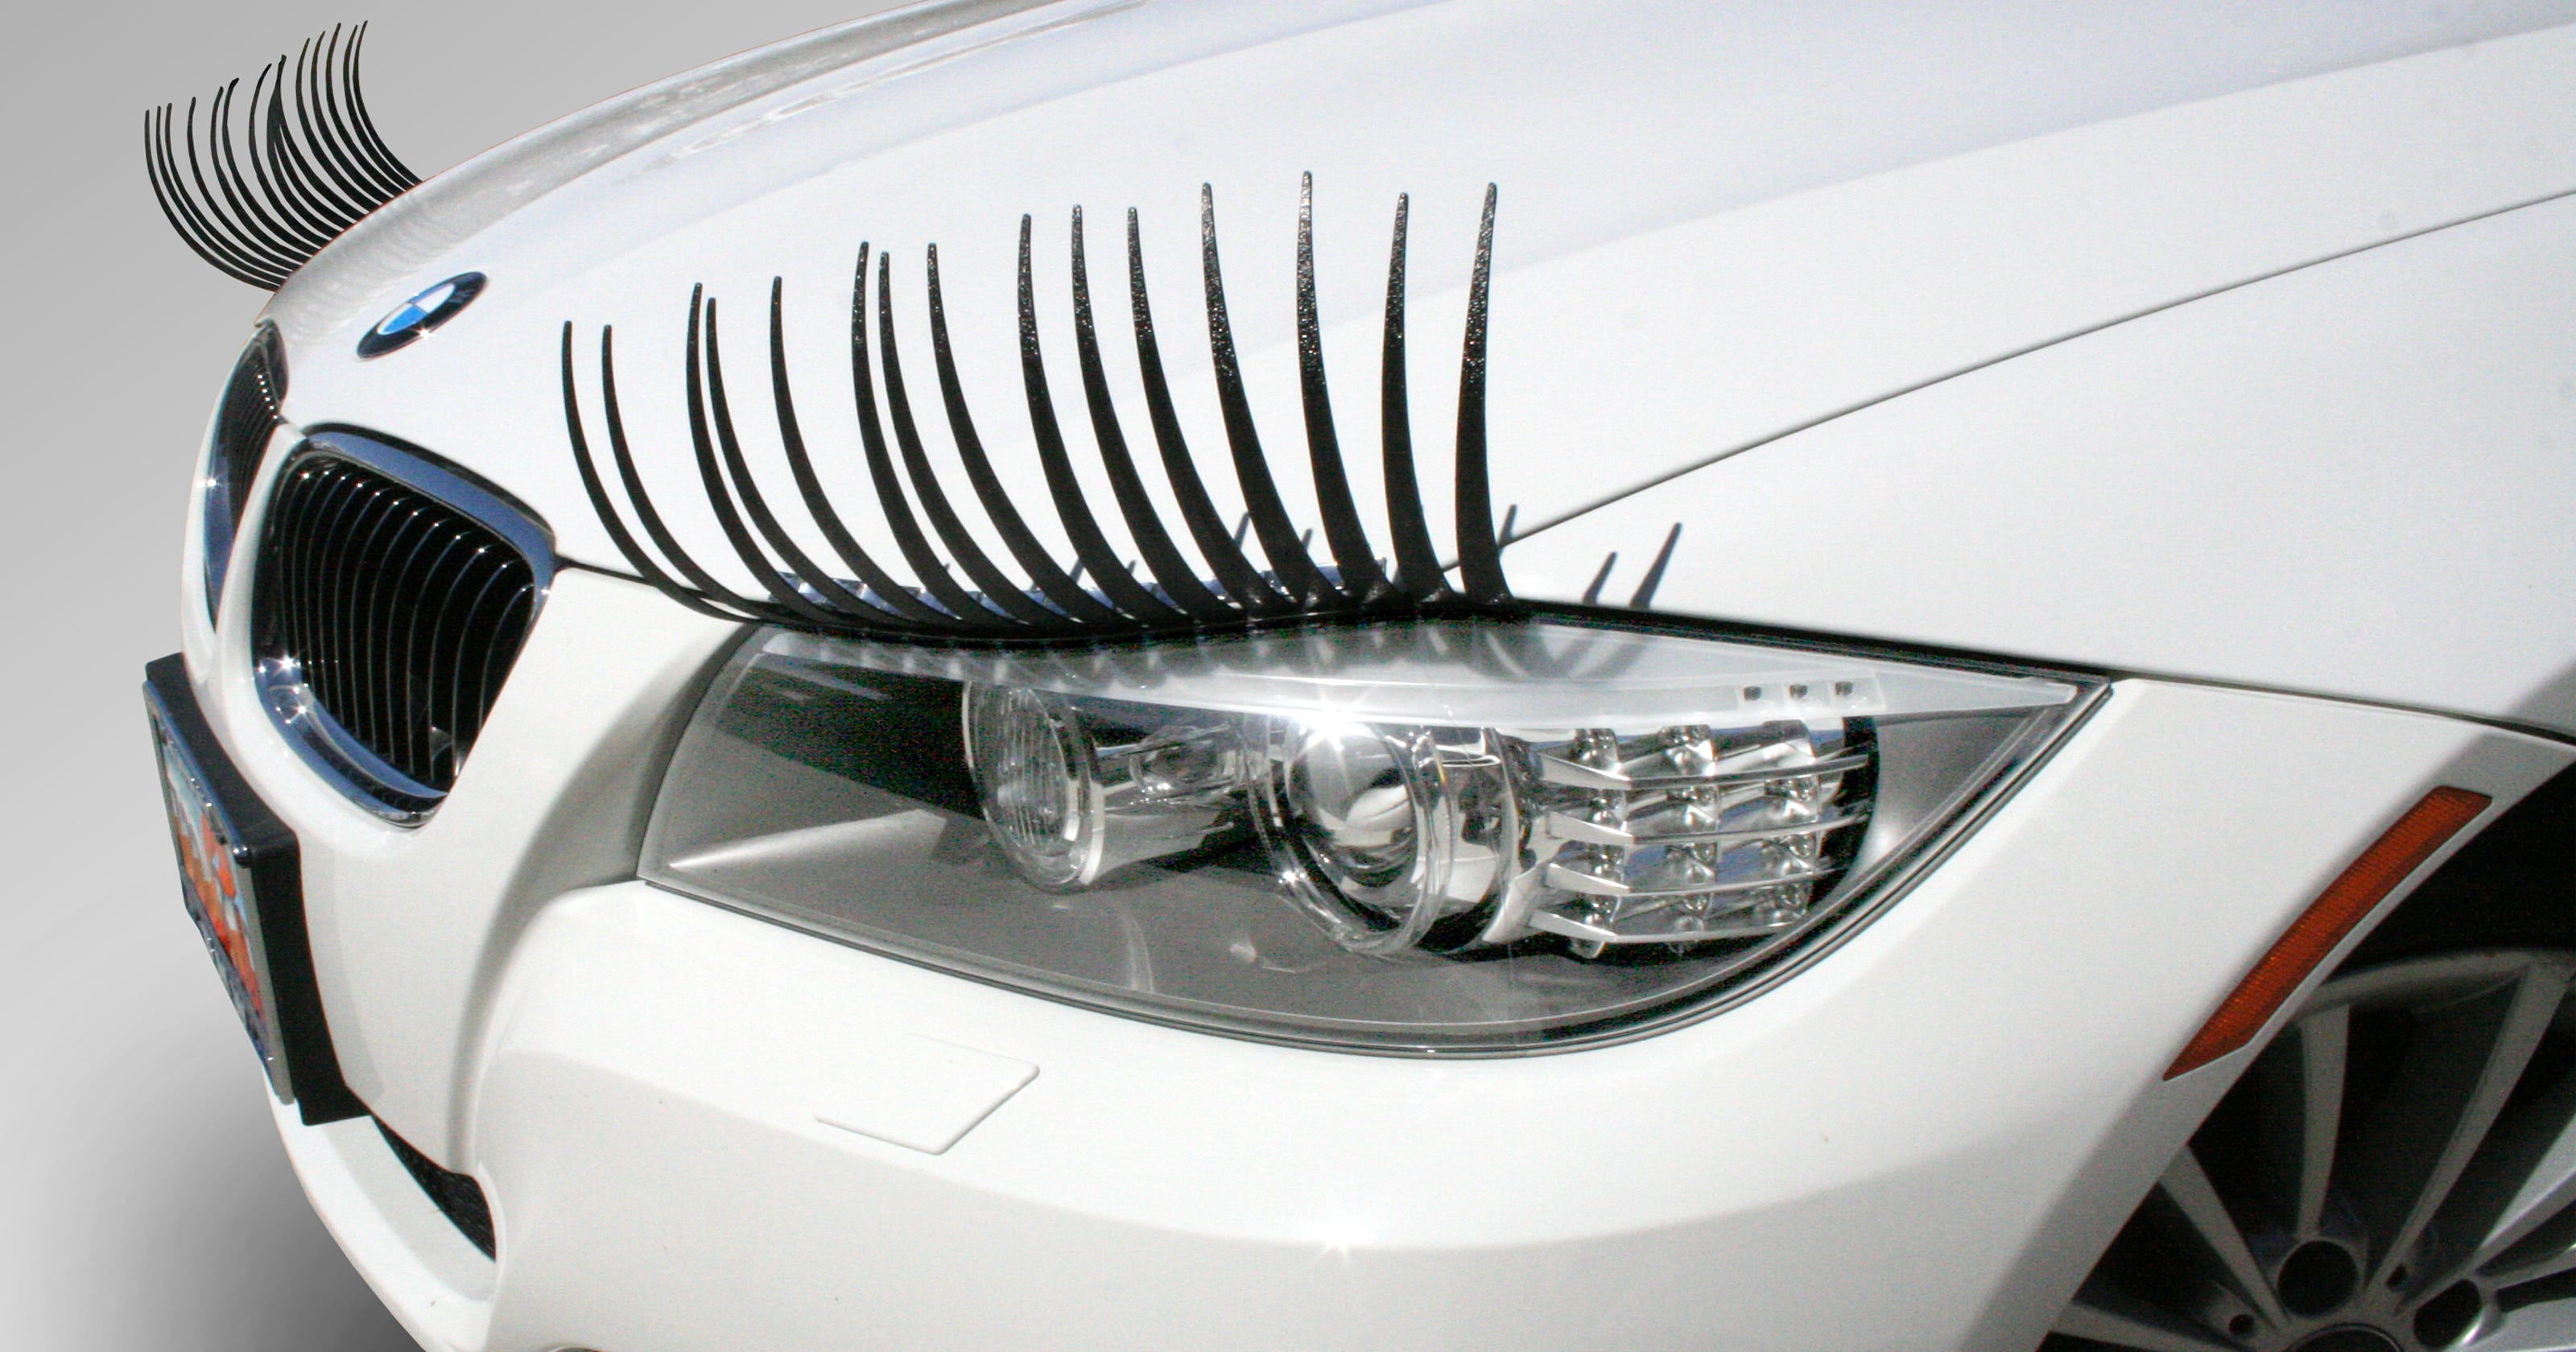 Drivers Go For Feminine Touch With Car Eyelashes